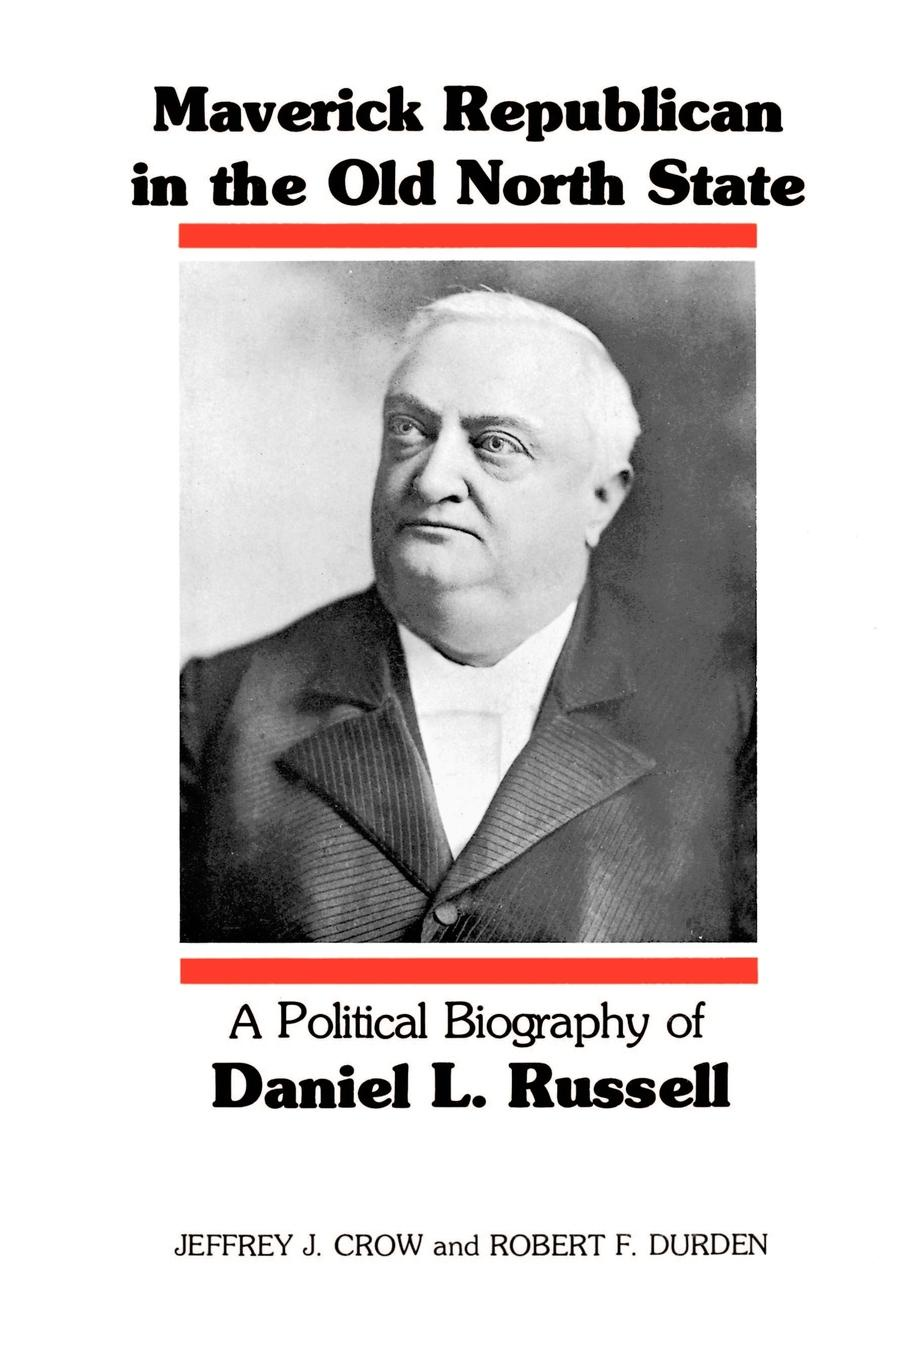 Jeffrey J. Crow, Robert Franklin Durden Maverick Republican in the Old North State. A Political Biography of Daniel L. Russell